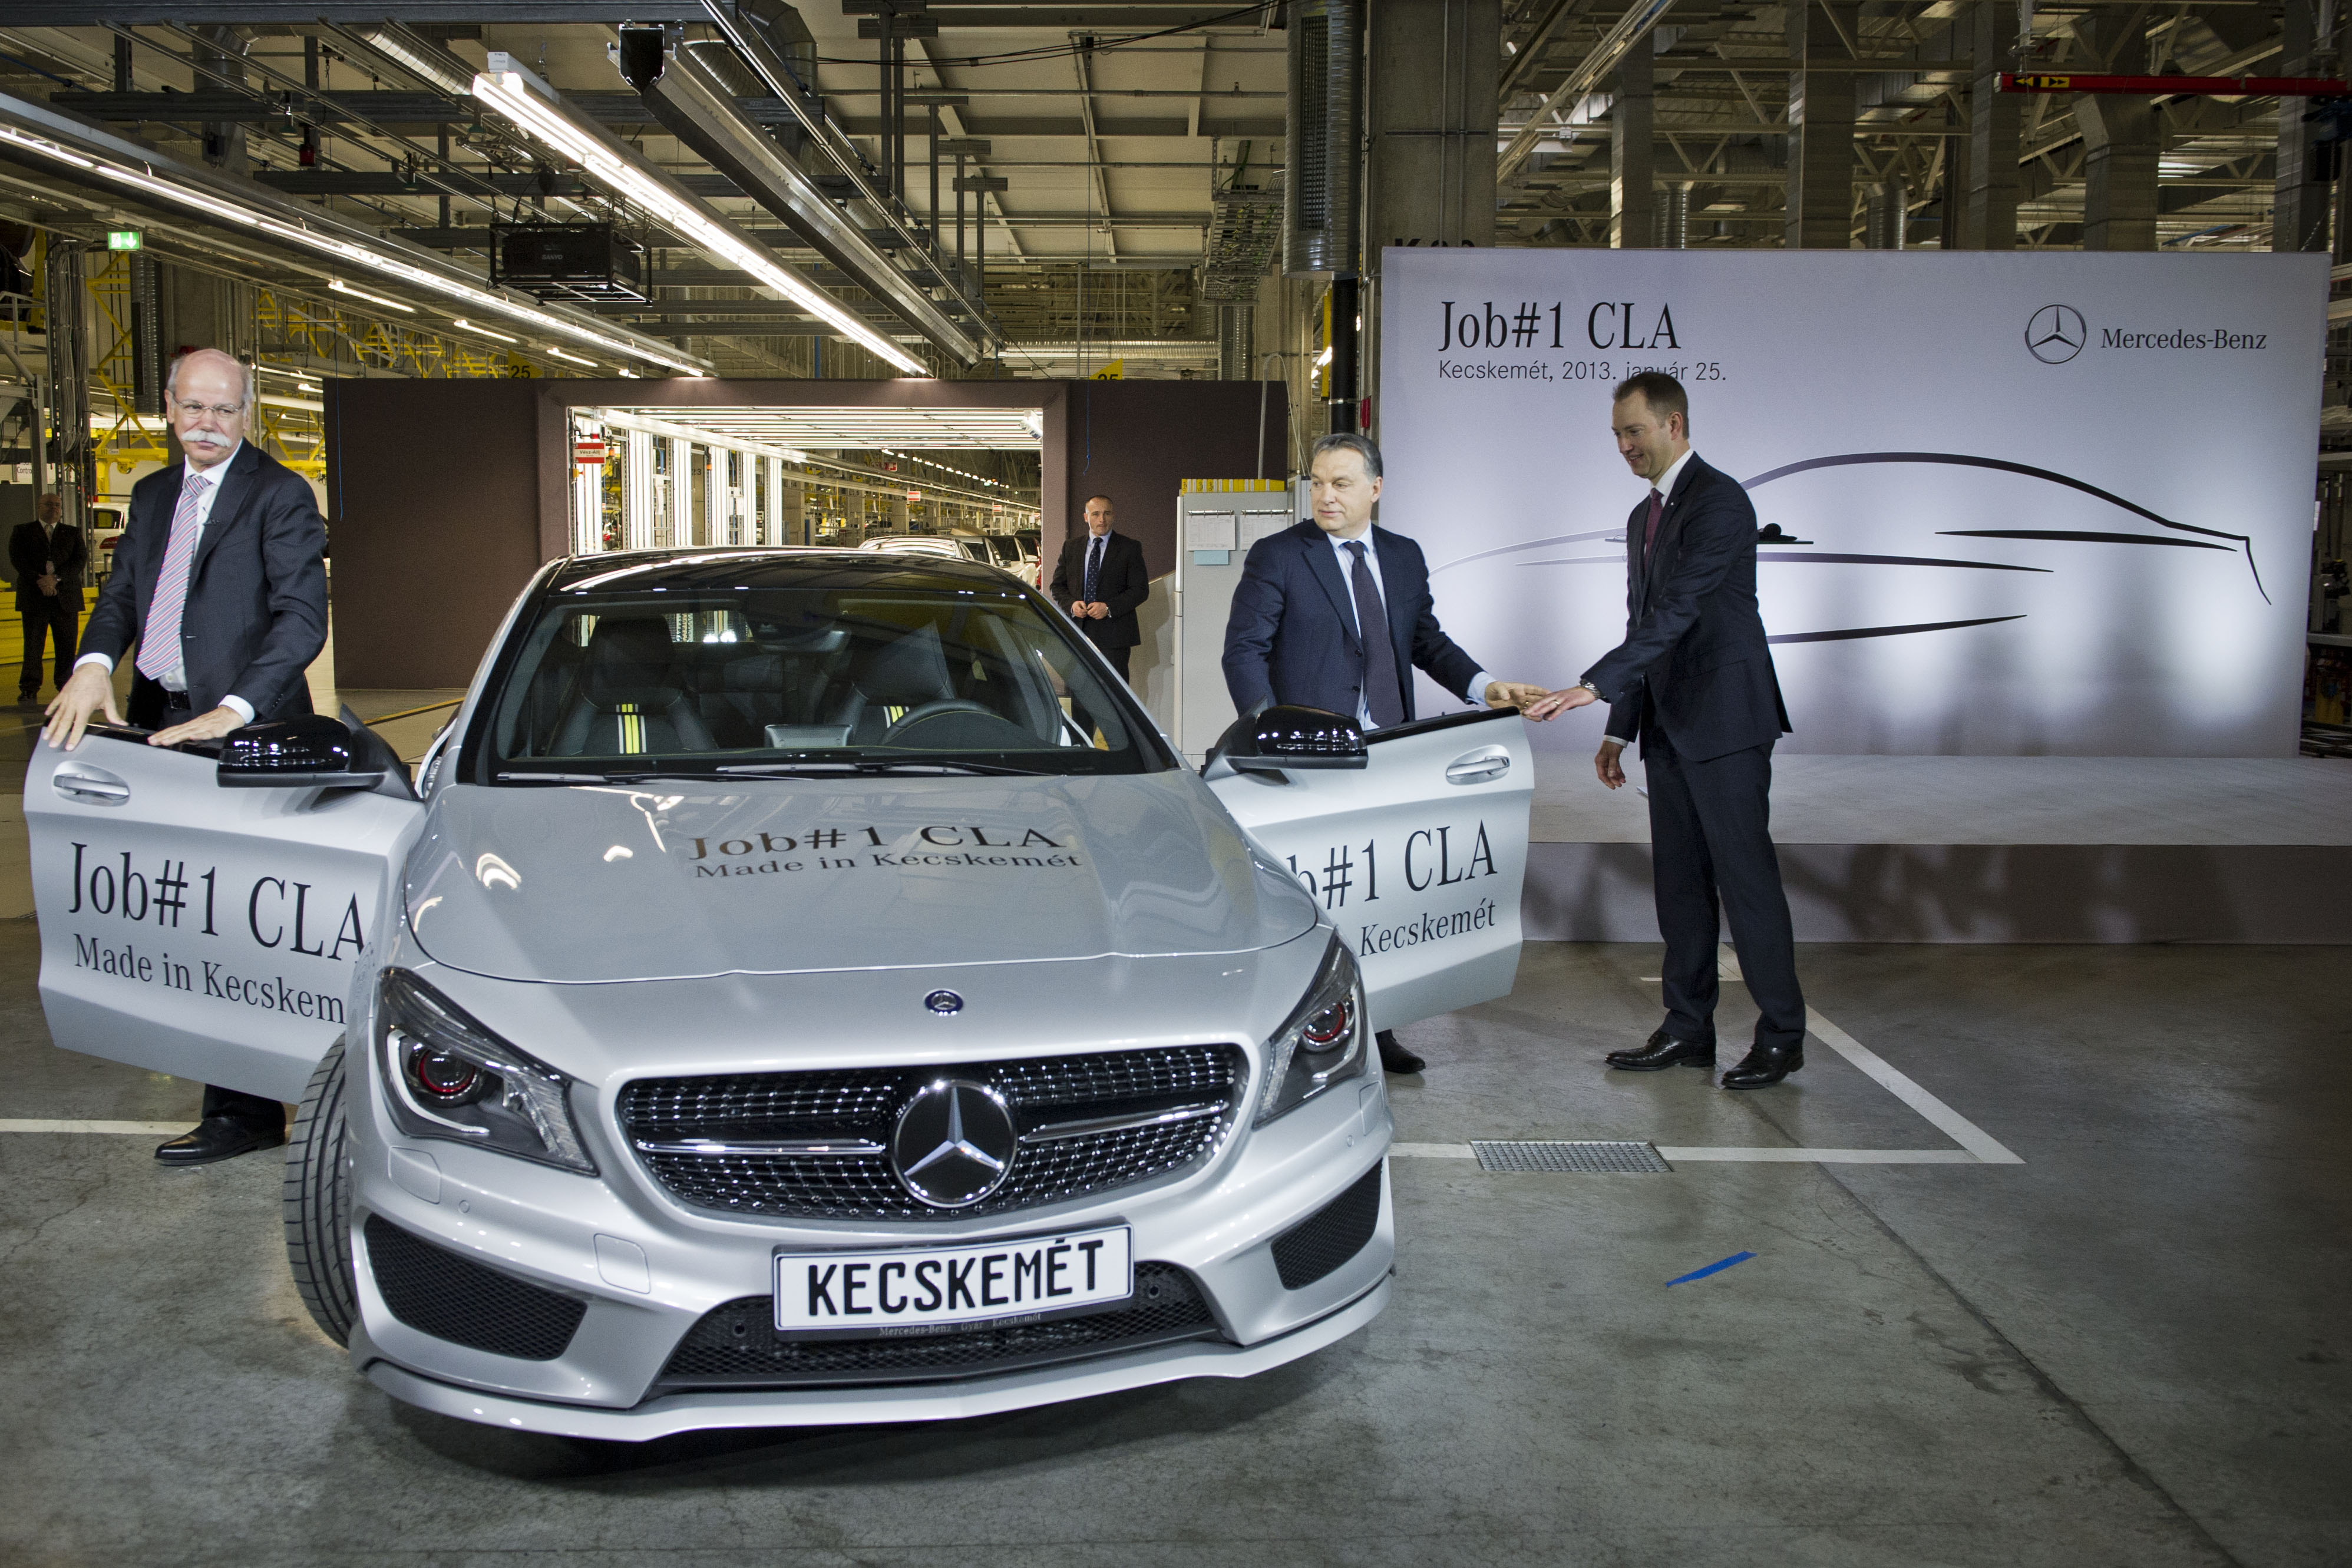 Mercedes Benz CLA Kecskemét Plant Rolls Out Its First Mercedes Benz CLA